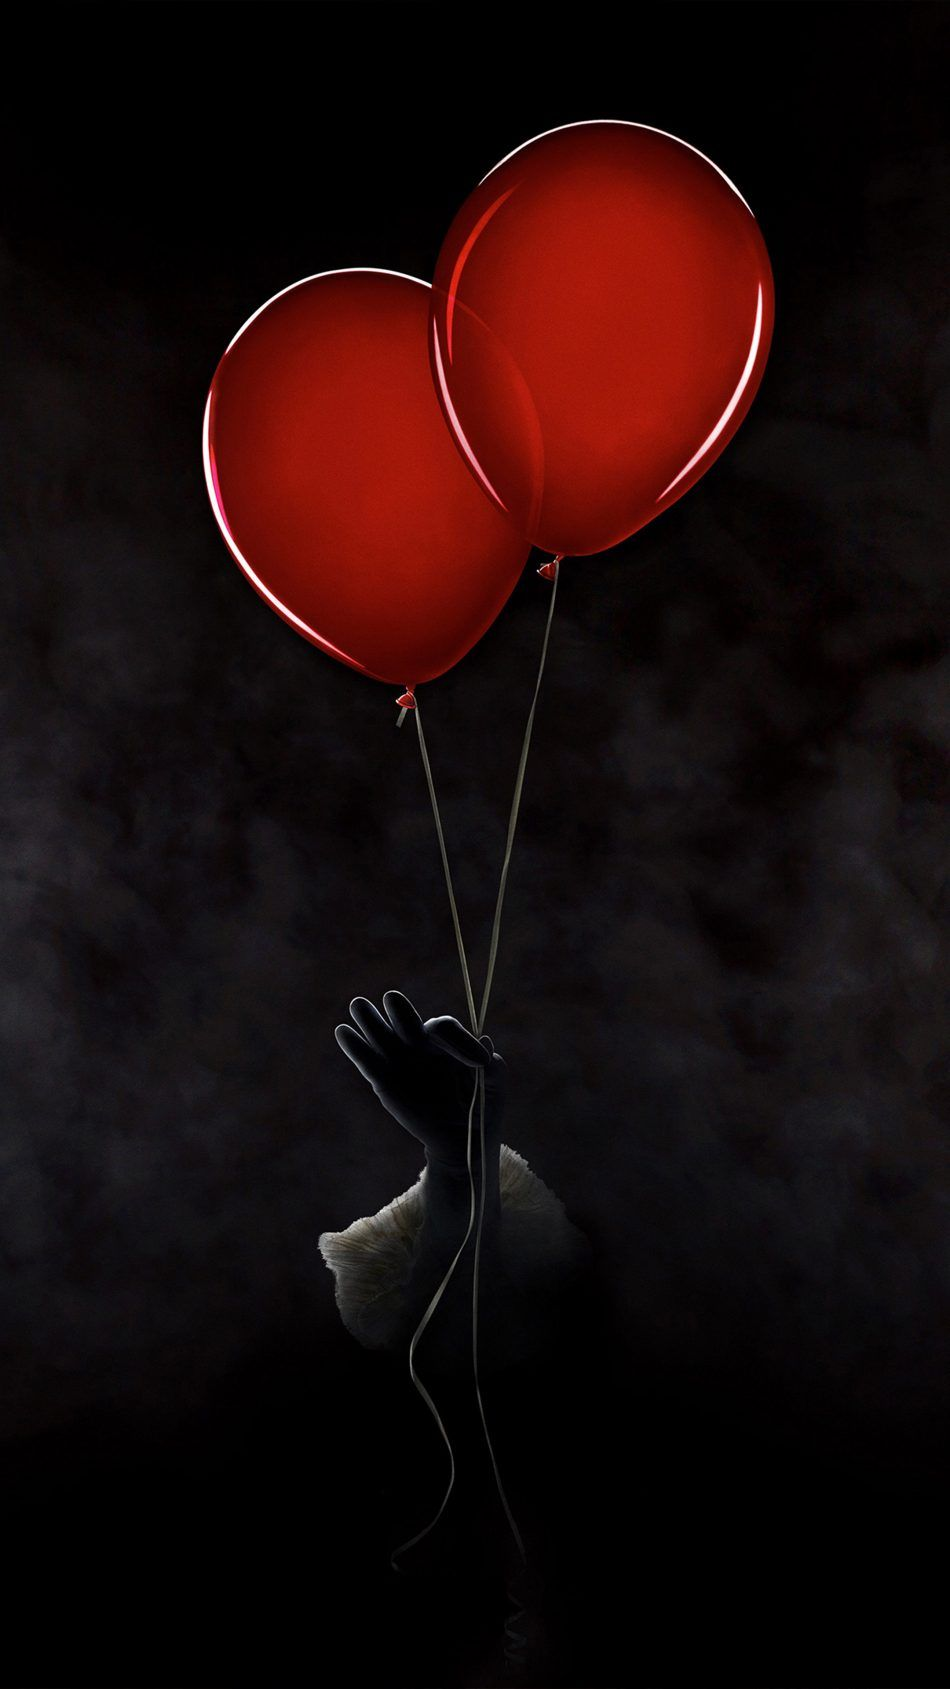 It Chapter Two 2019 4k Ultra Hd Mobile Wallpaper Halloween Wallpaper Scary Wallpaper Phone Wallpaper